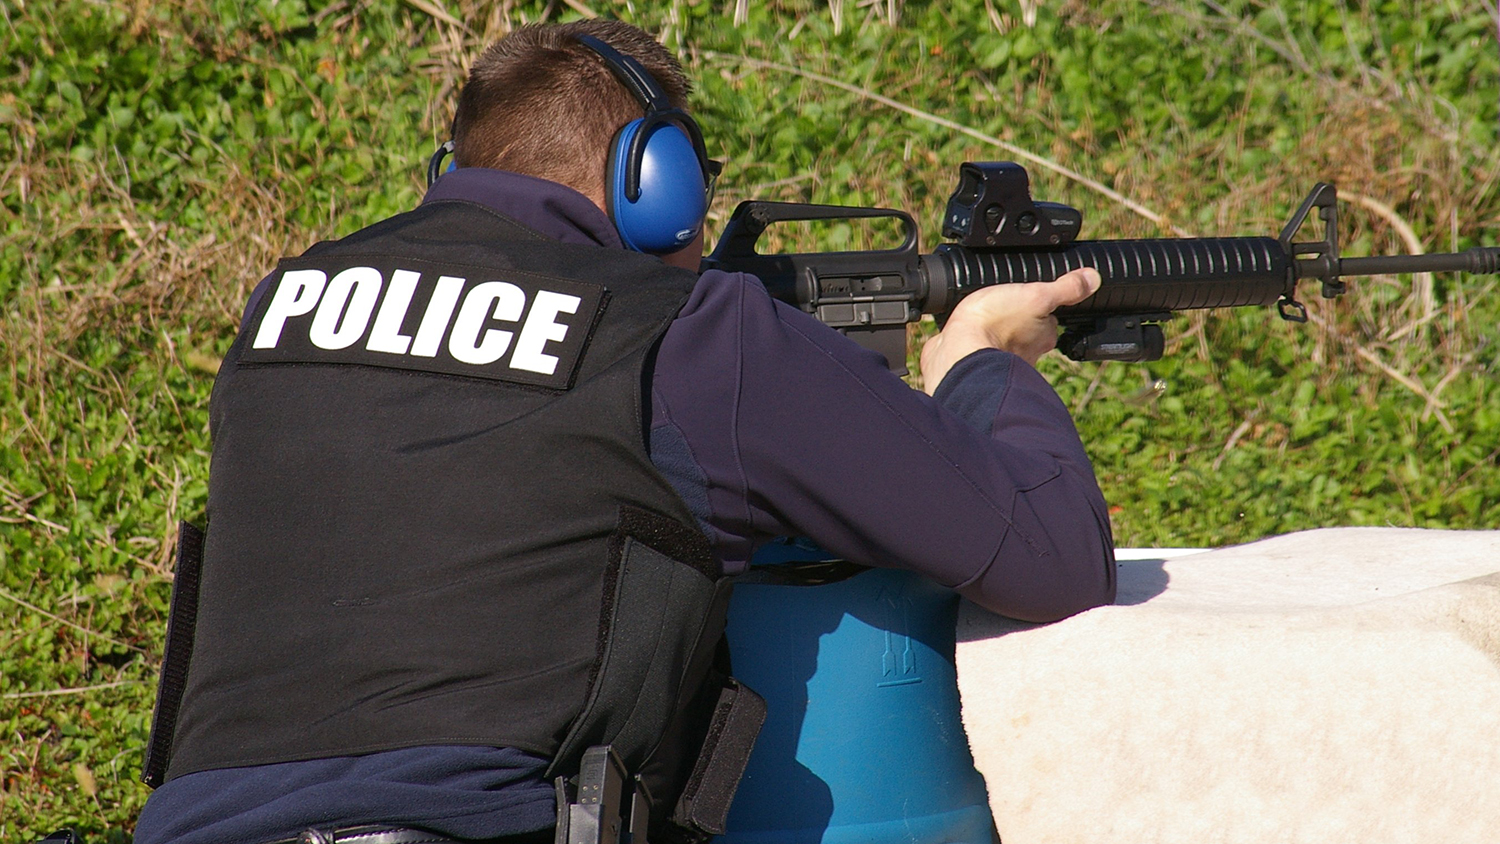 The Paper: Sheriff's Office Receives NRA Grant to Fund Purchase of Training Equipment